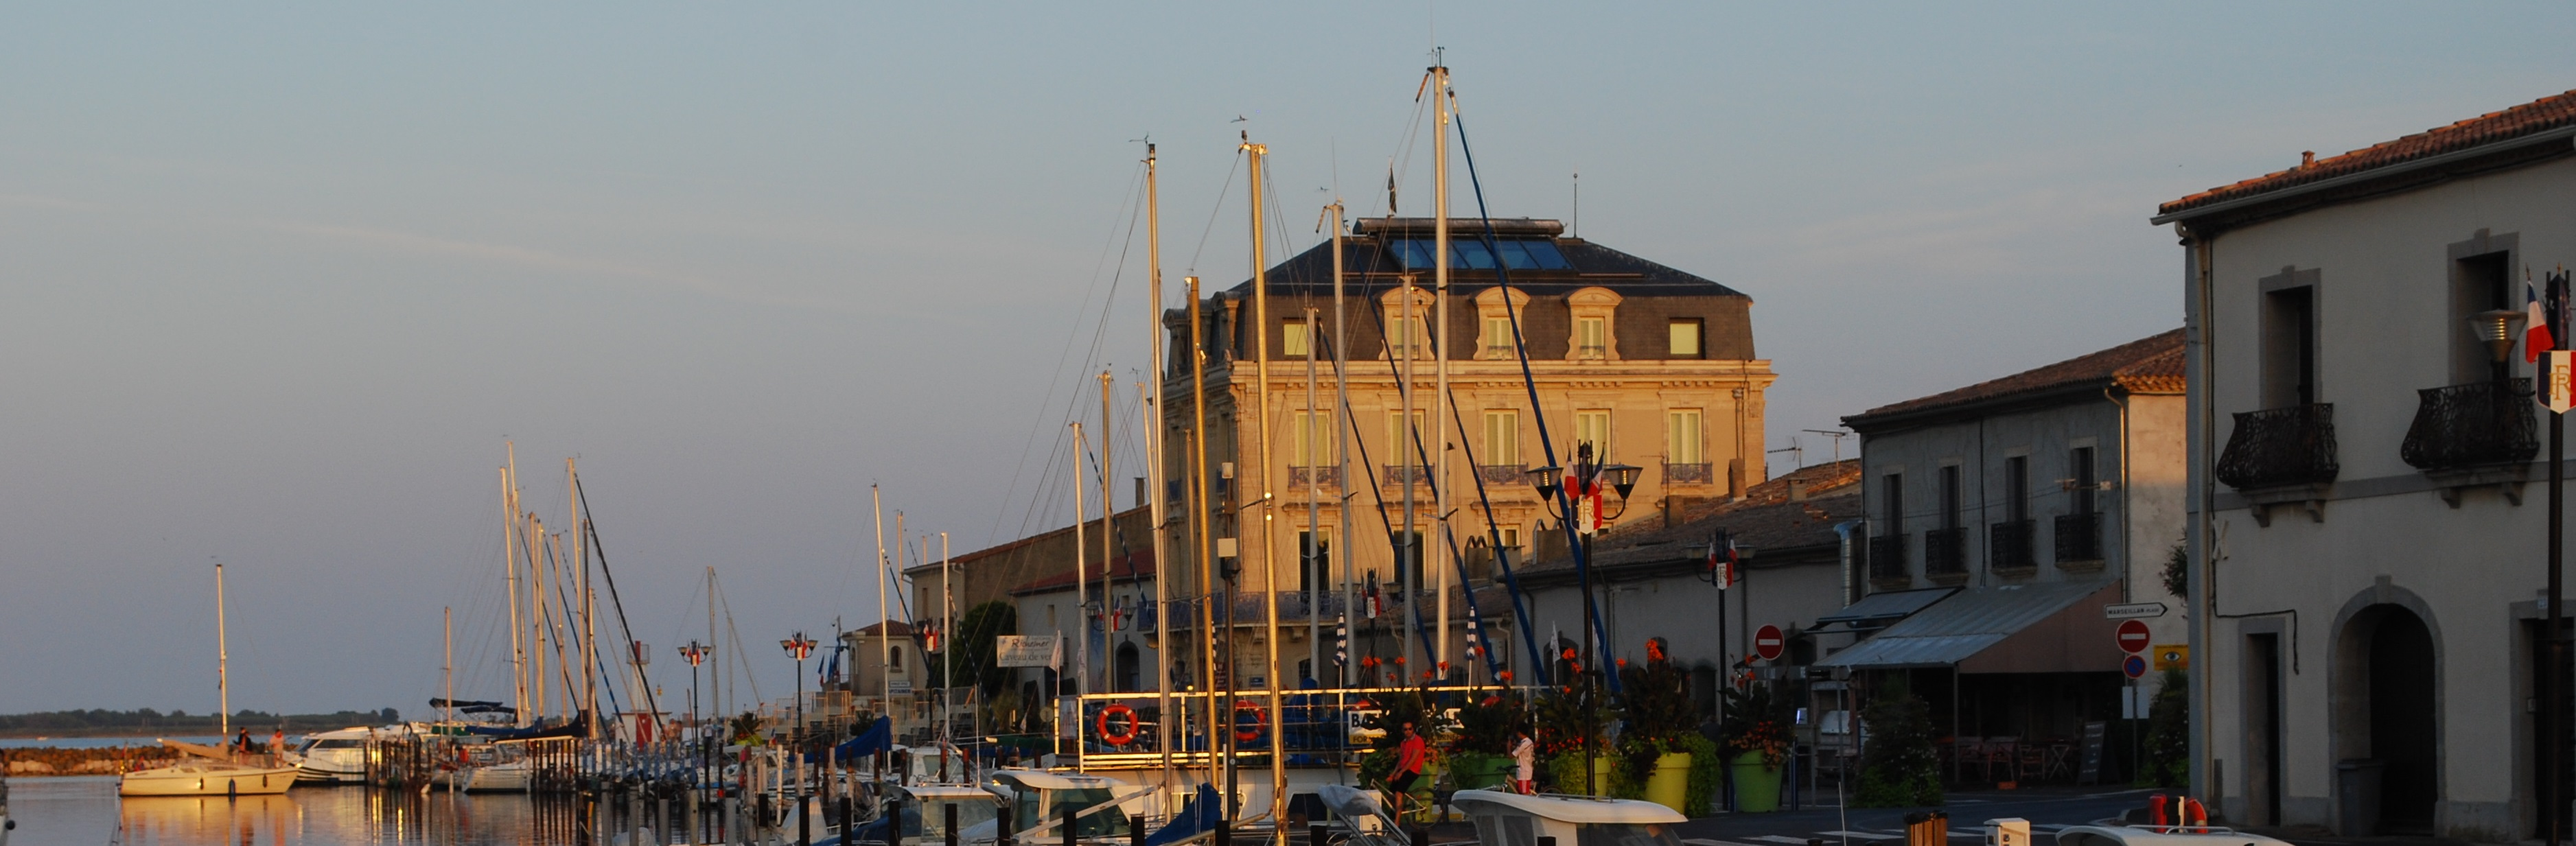 Photo of Marseillan Port